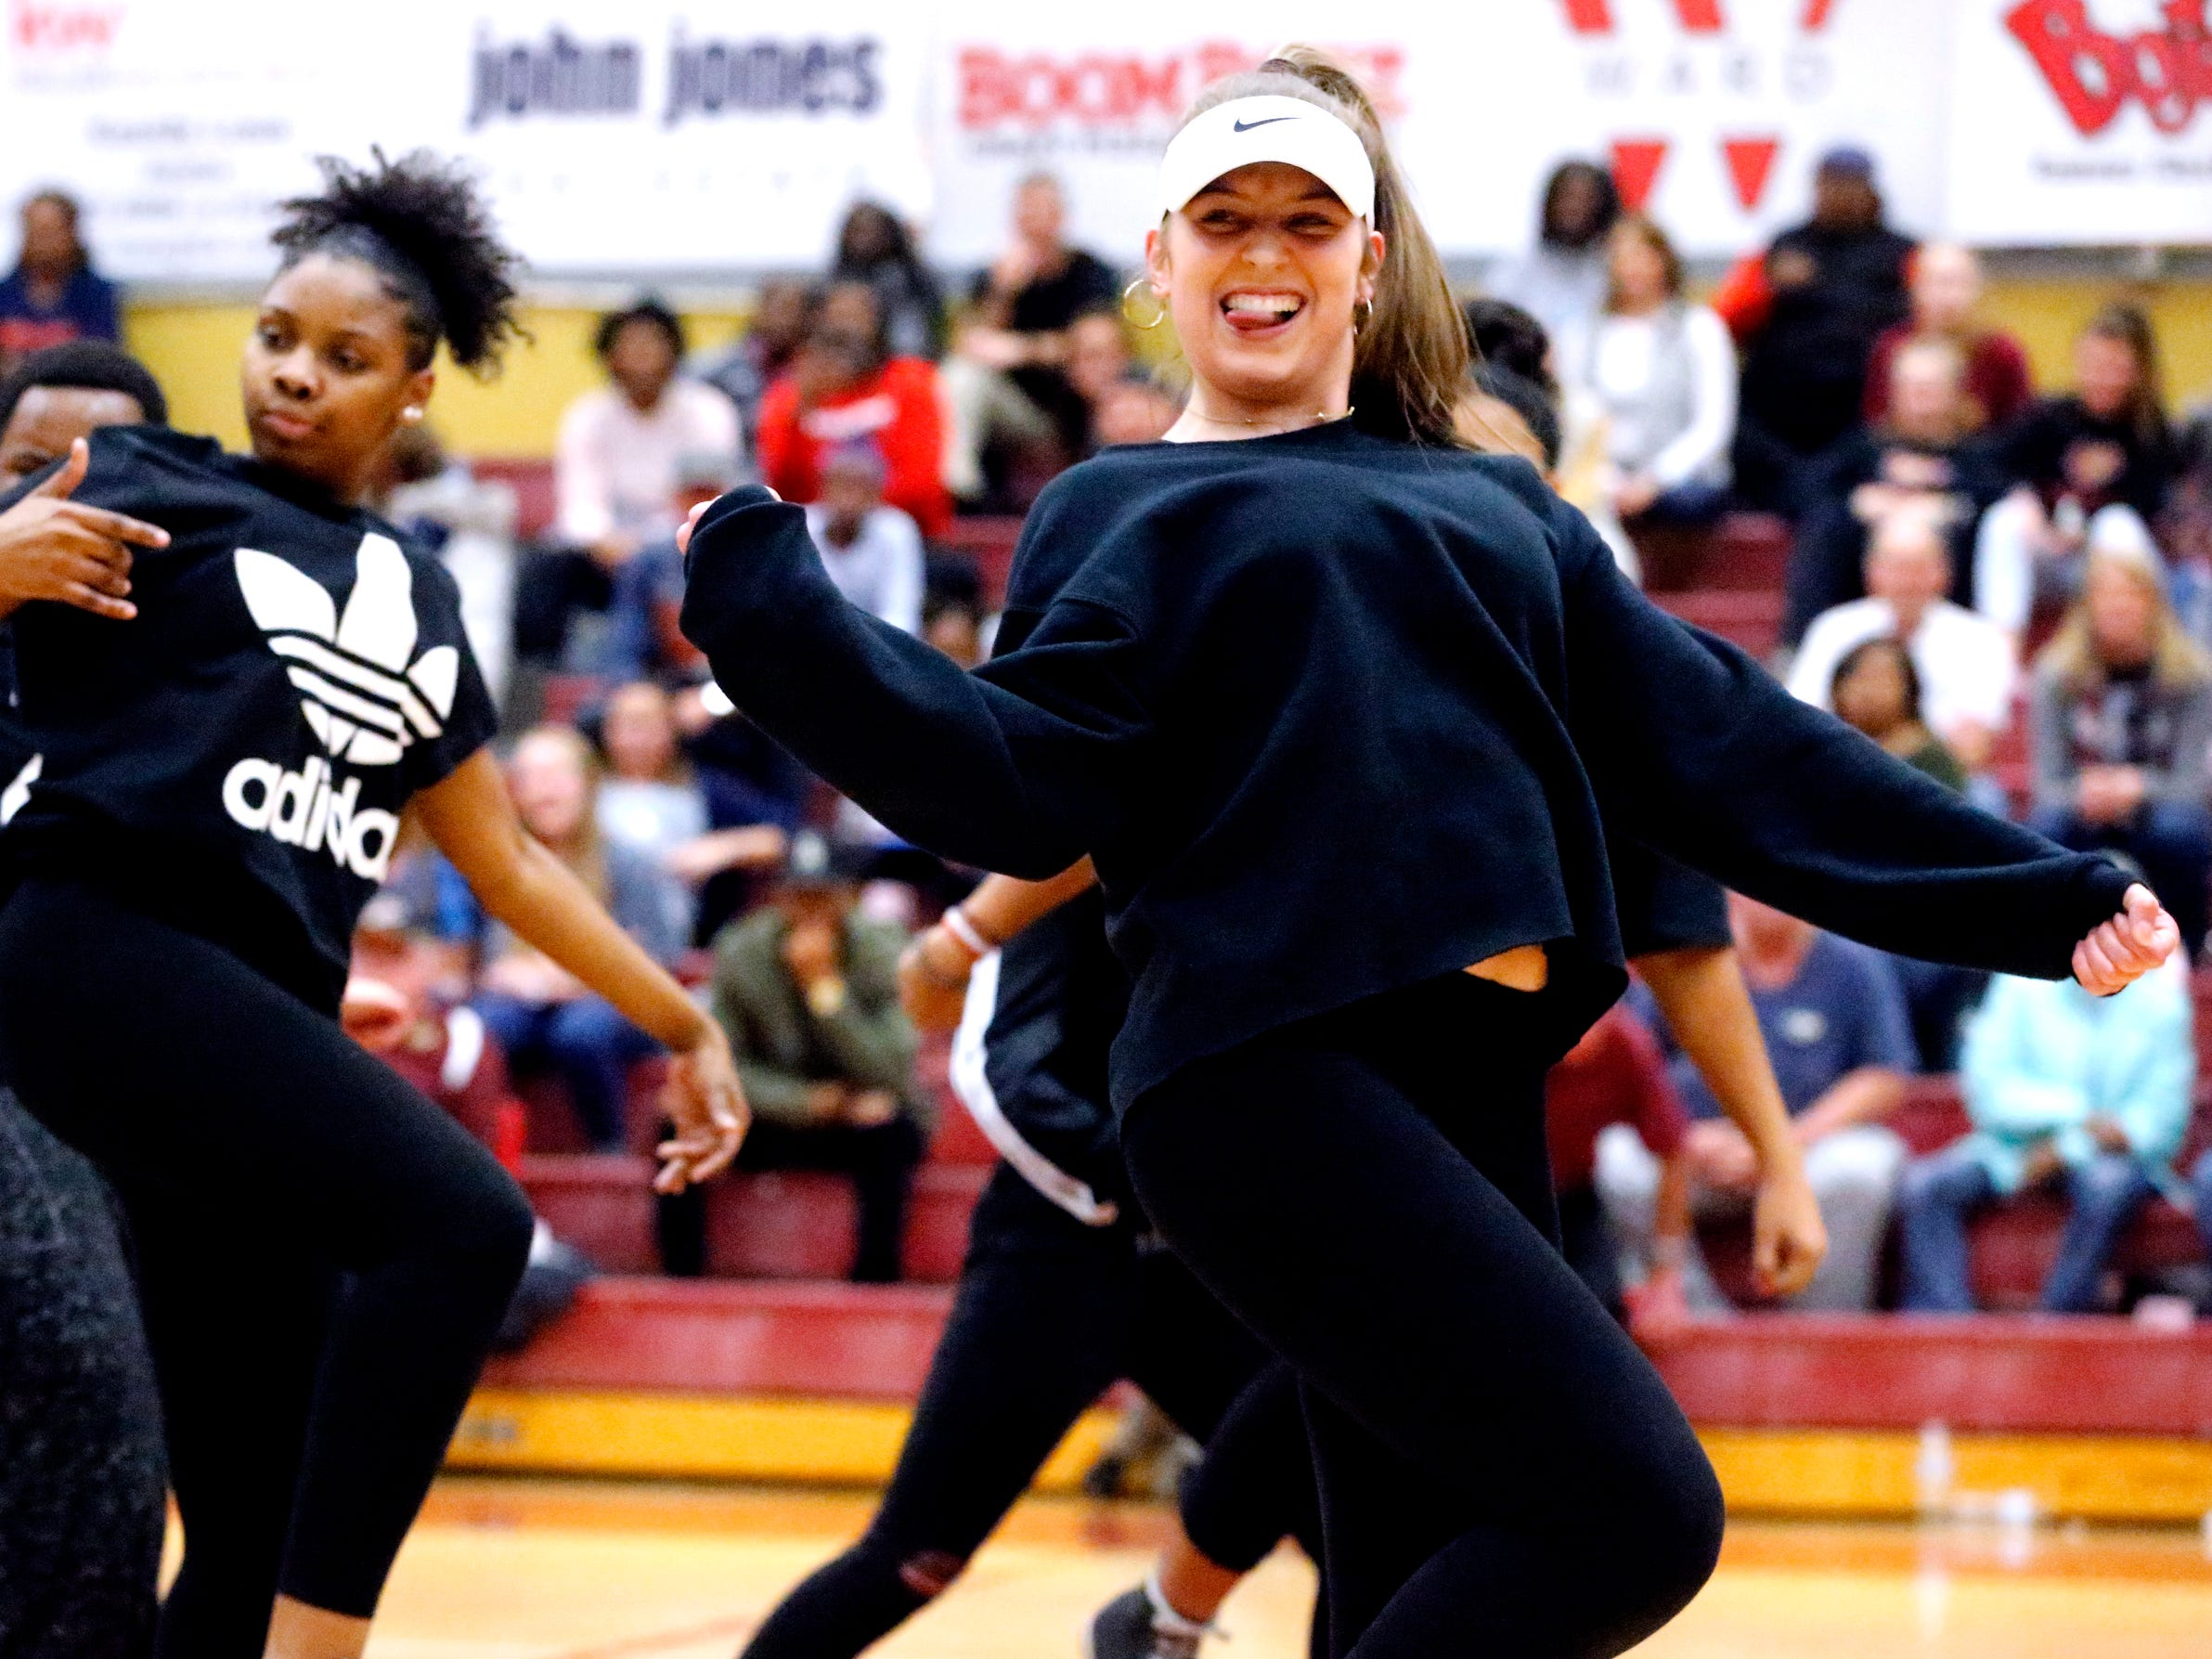 A dance group performs during half-time of the Blackman vs. Riverdale boys basketball game on Tuesday Jan. 8, 2019